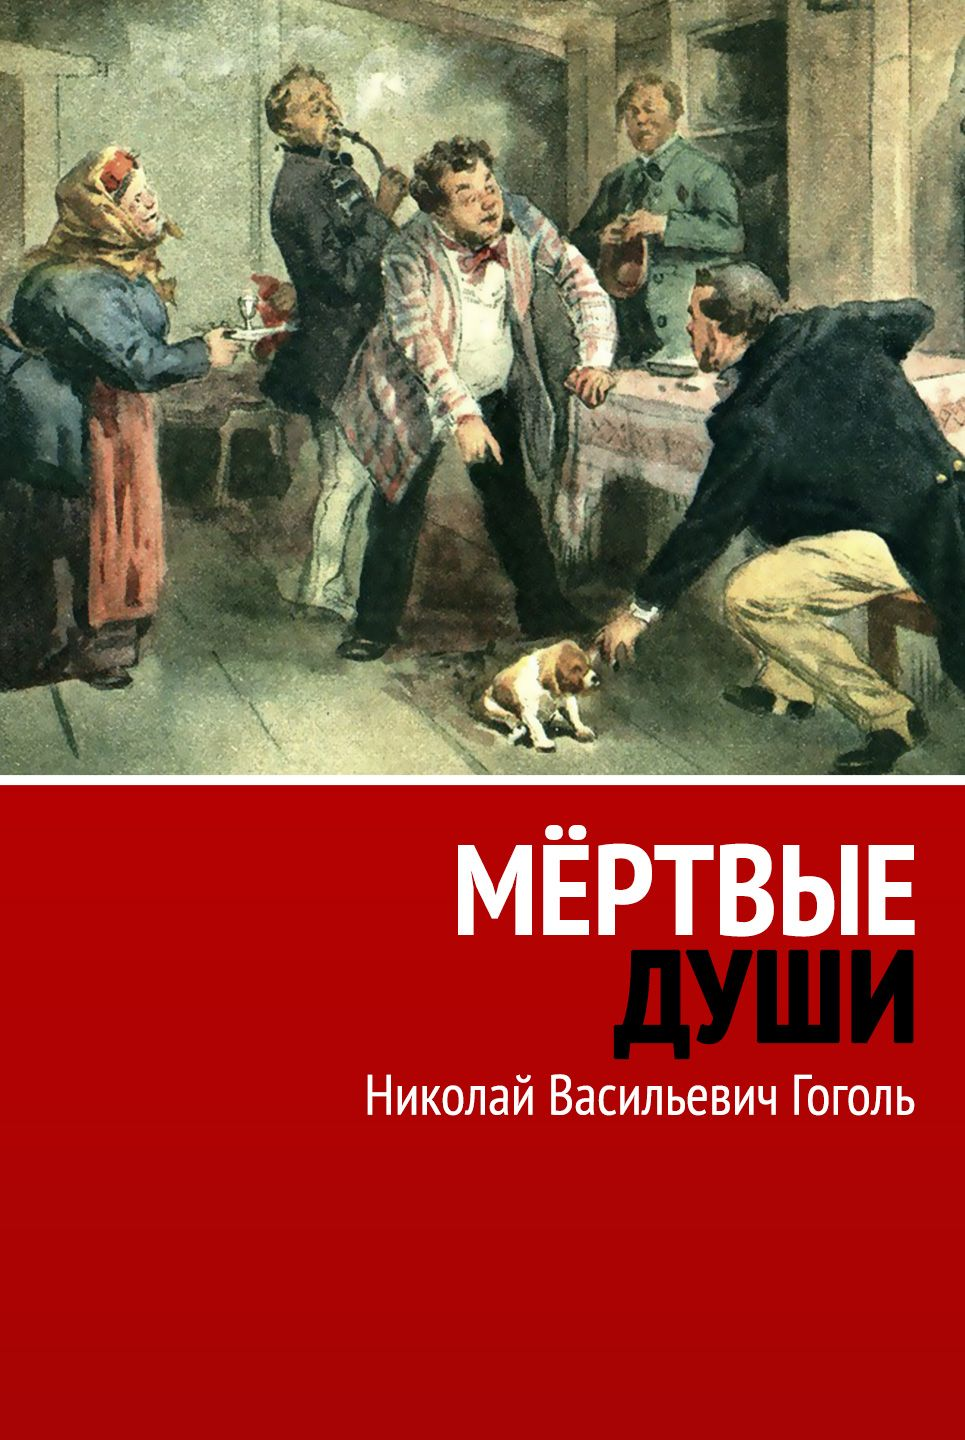 an analysis of the character of chichikov in the poem dead souls by nikolai gogol This item:dead souls by nikolai gogol paperback $1635 the merit in this edition of demons resides in the technical virtuosity of the translatorsthey capture the feverishly intense, personal explosions of activity and emotion that manifest themselves in russian life.